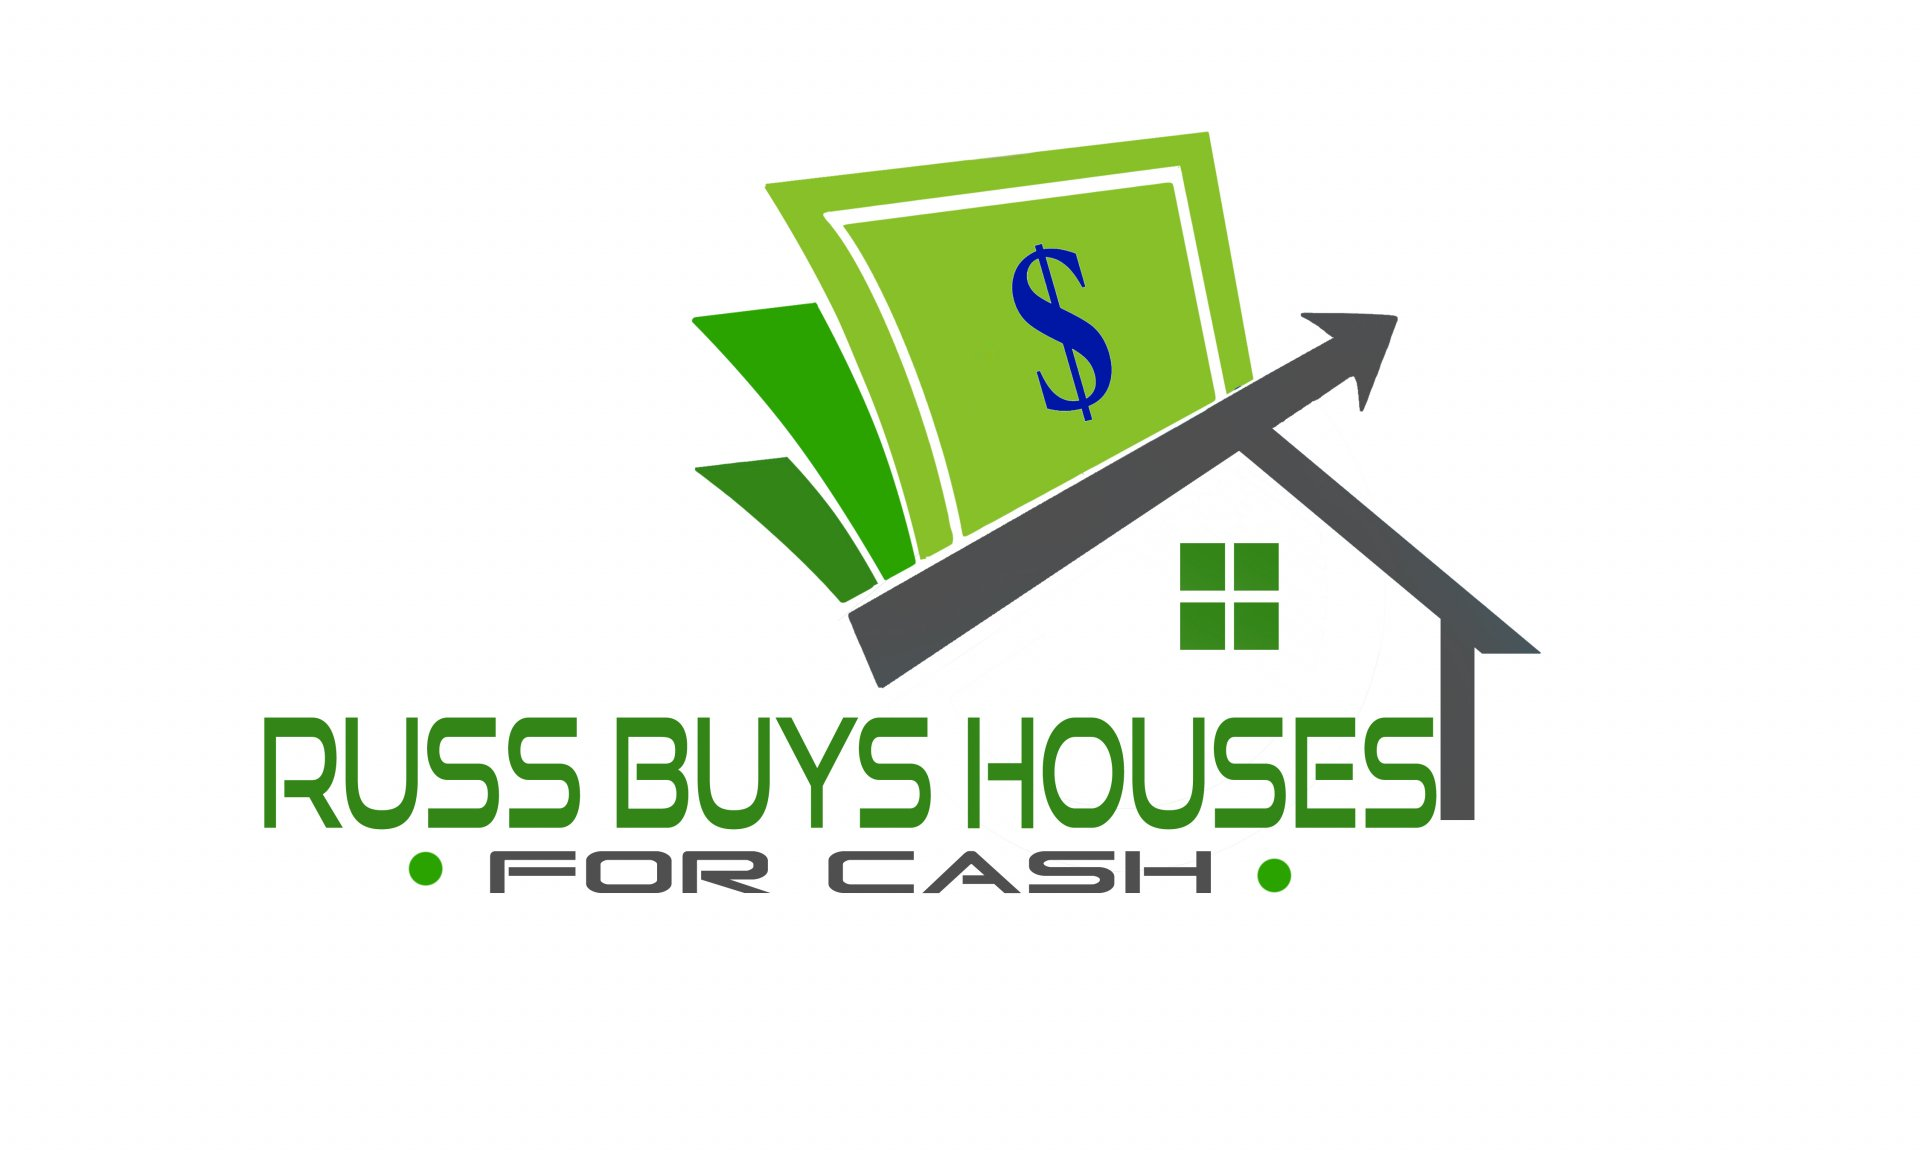 Russ BUYS Houses For CASH logo